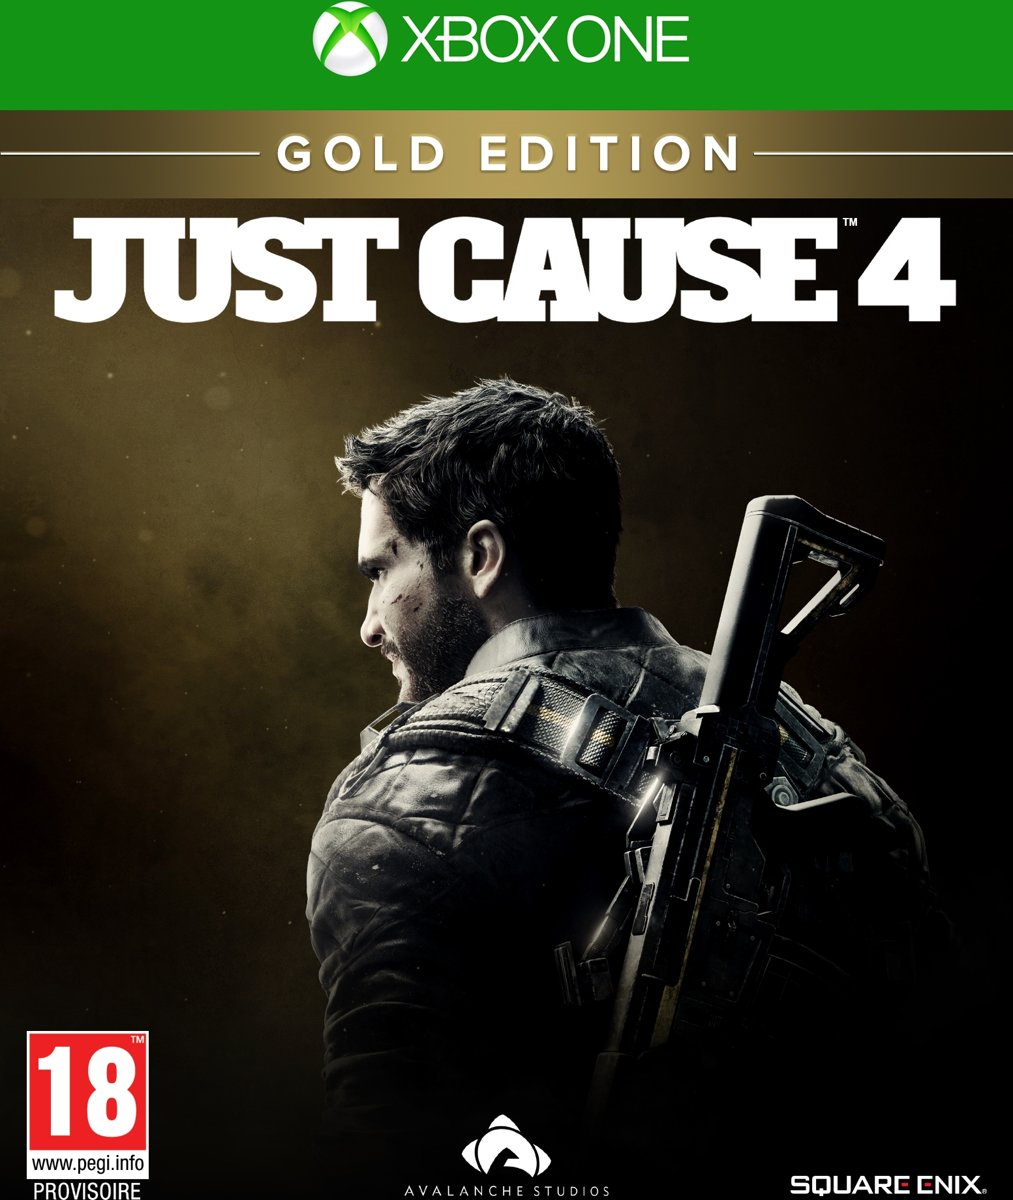 Just Cause 4 - Gold Edition Xbox One